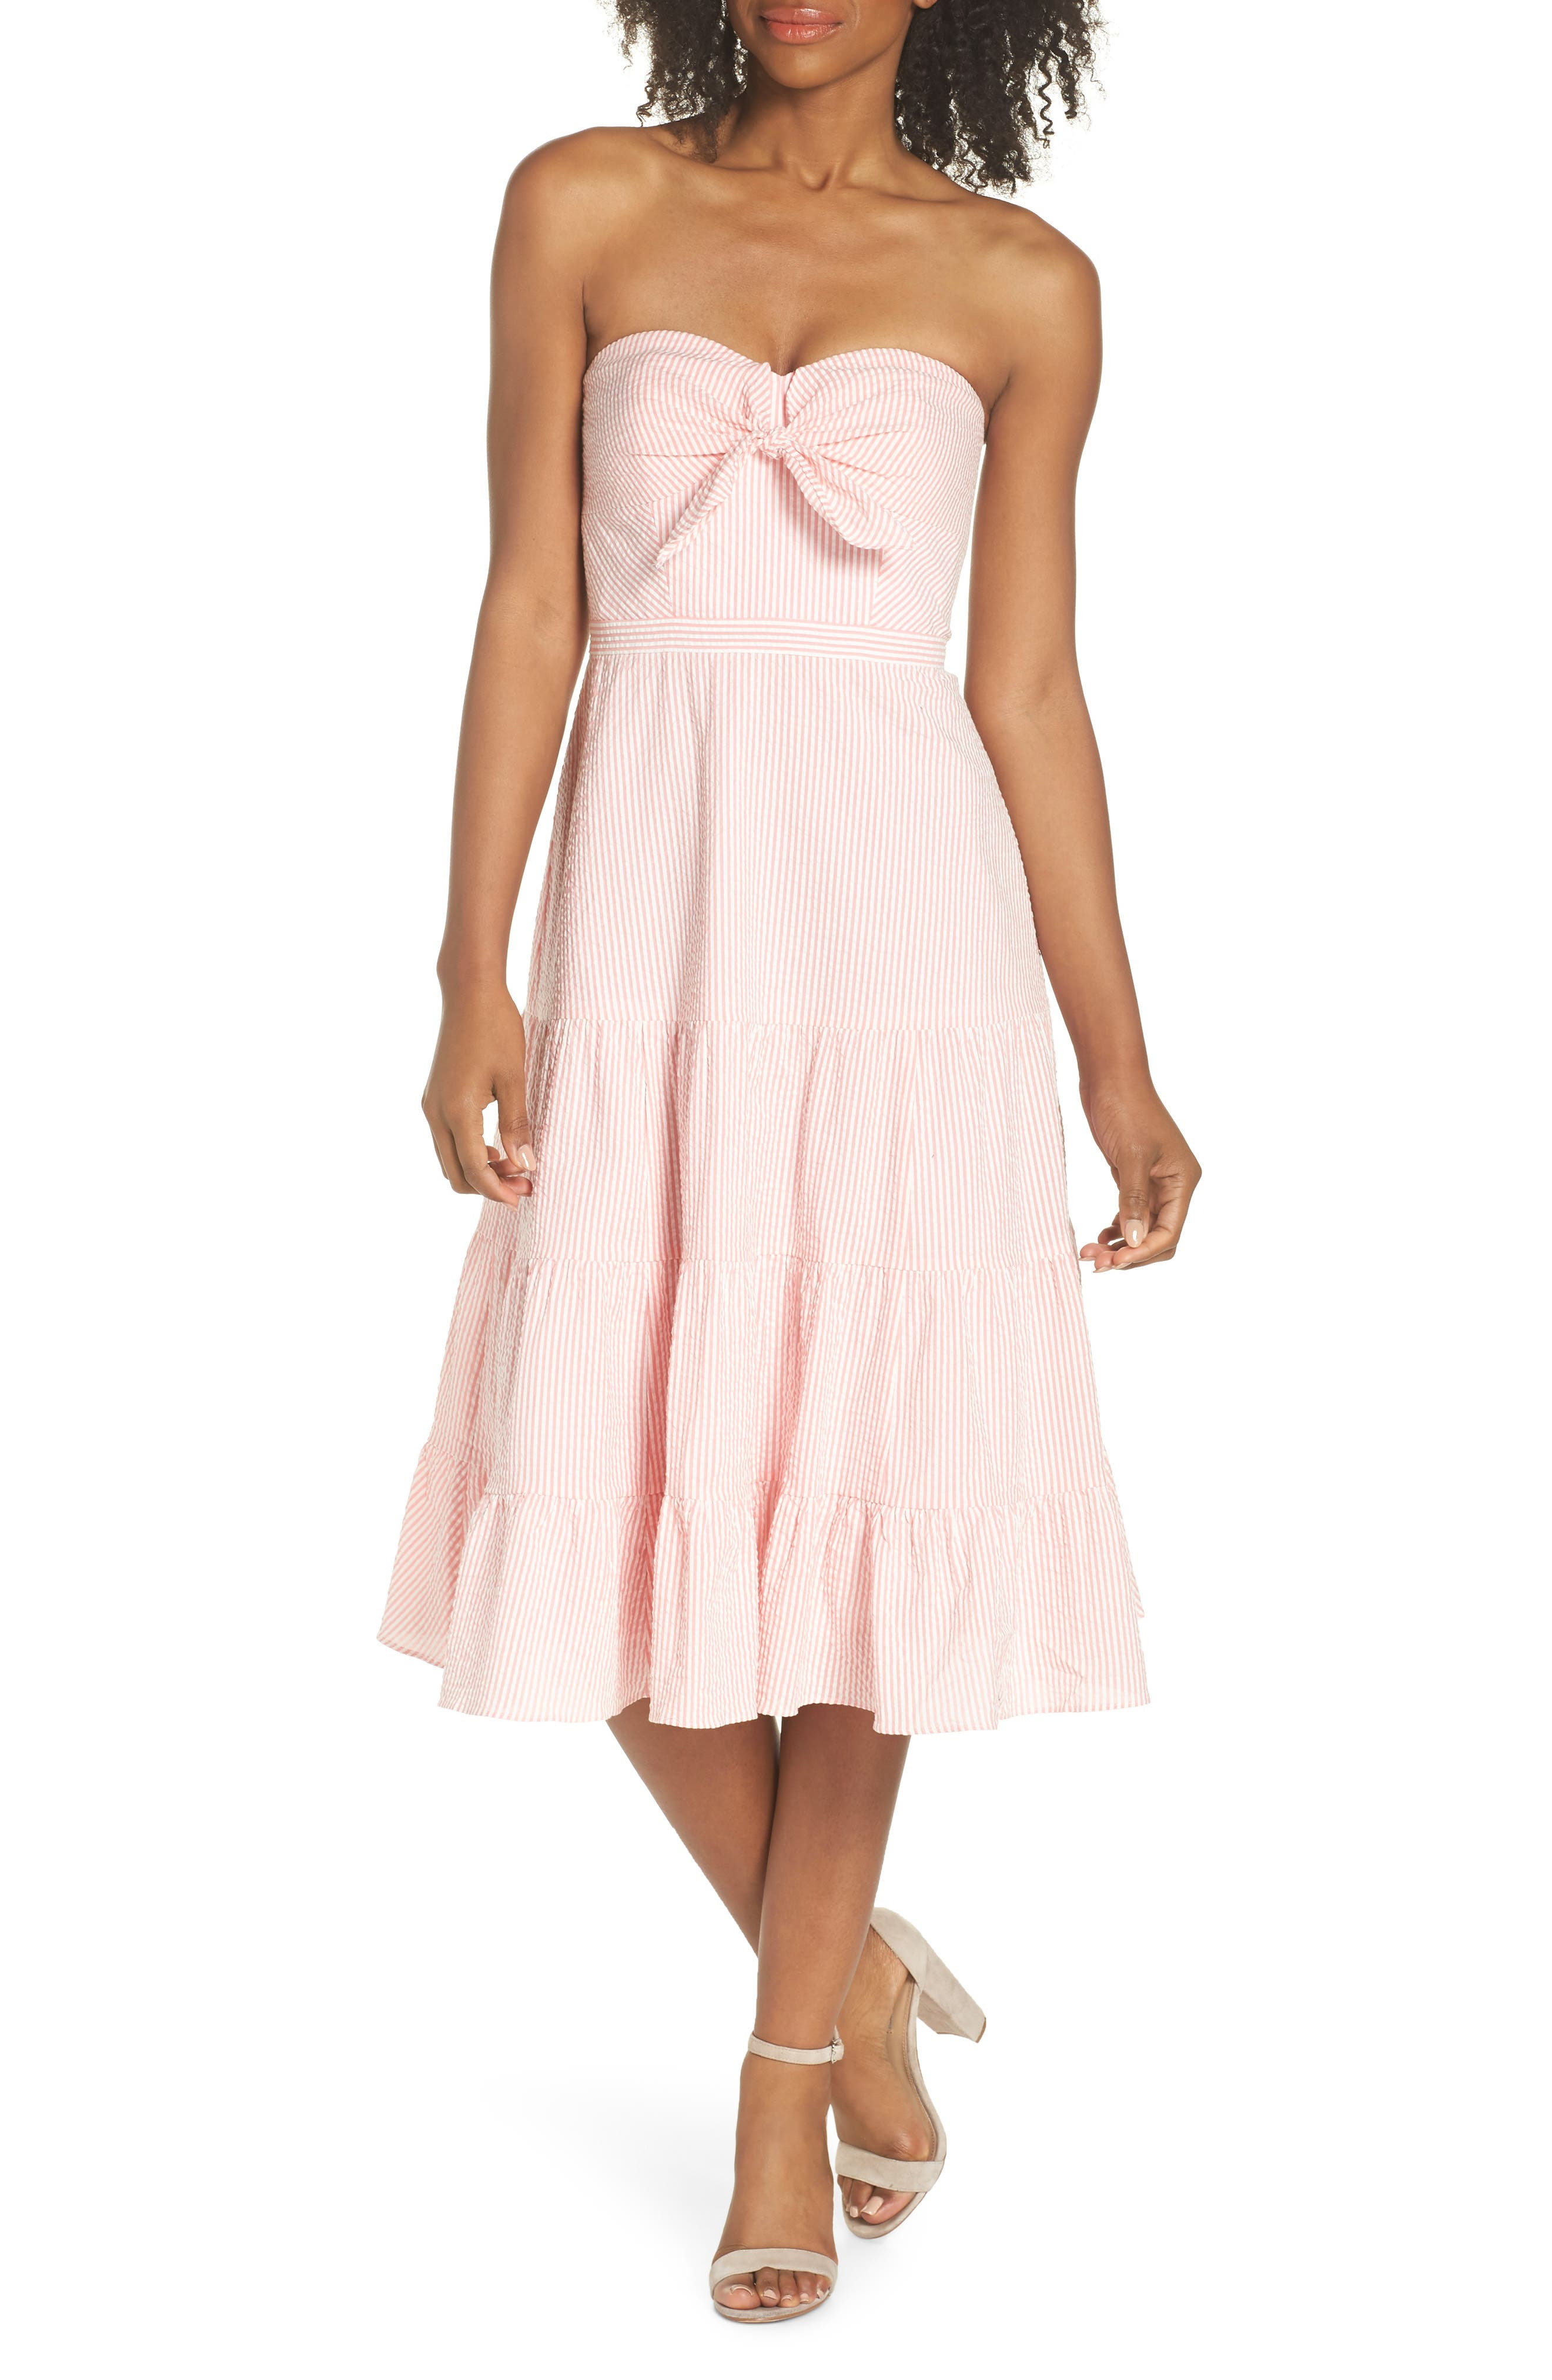 J.Crew Tie Front Strapless Dress,                         Main,                         color, Bright Coral